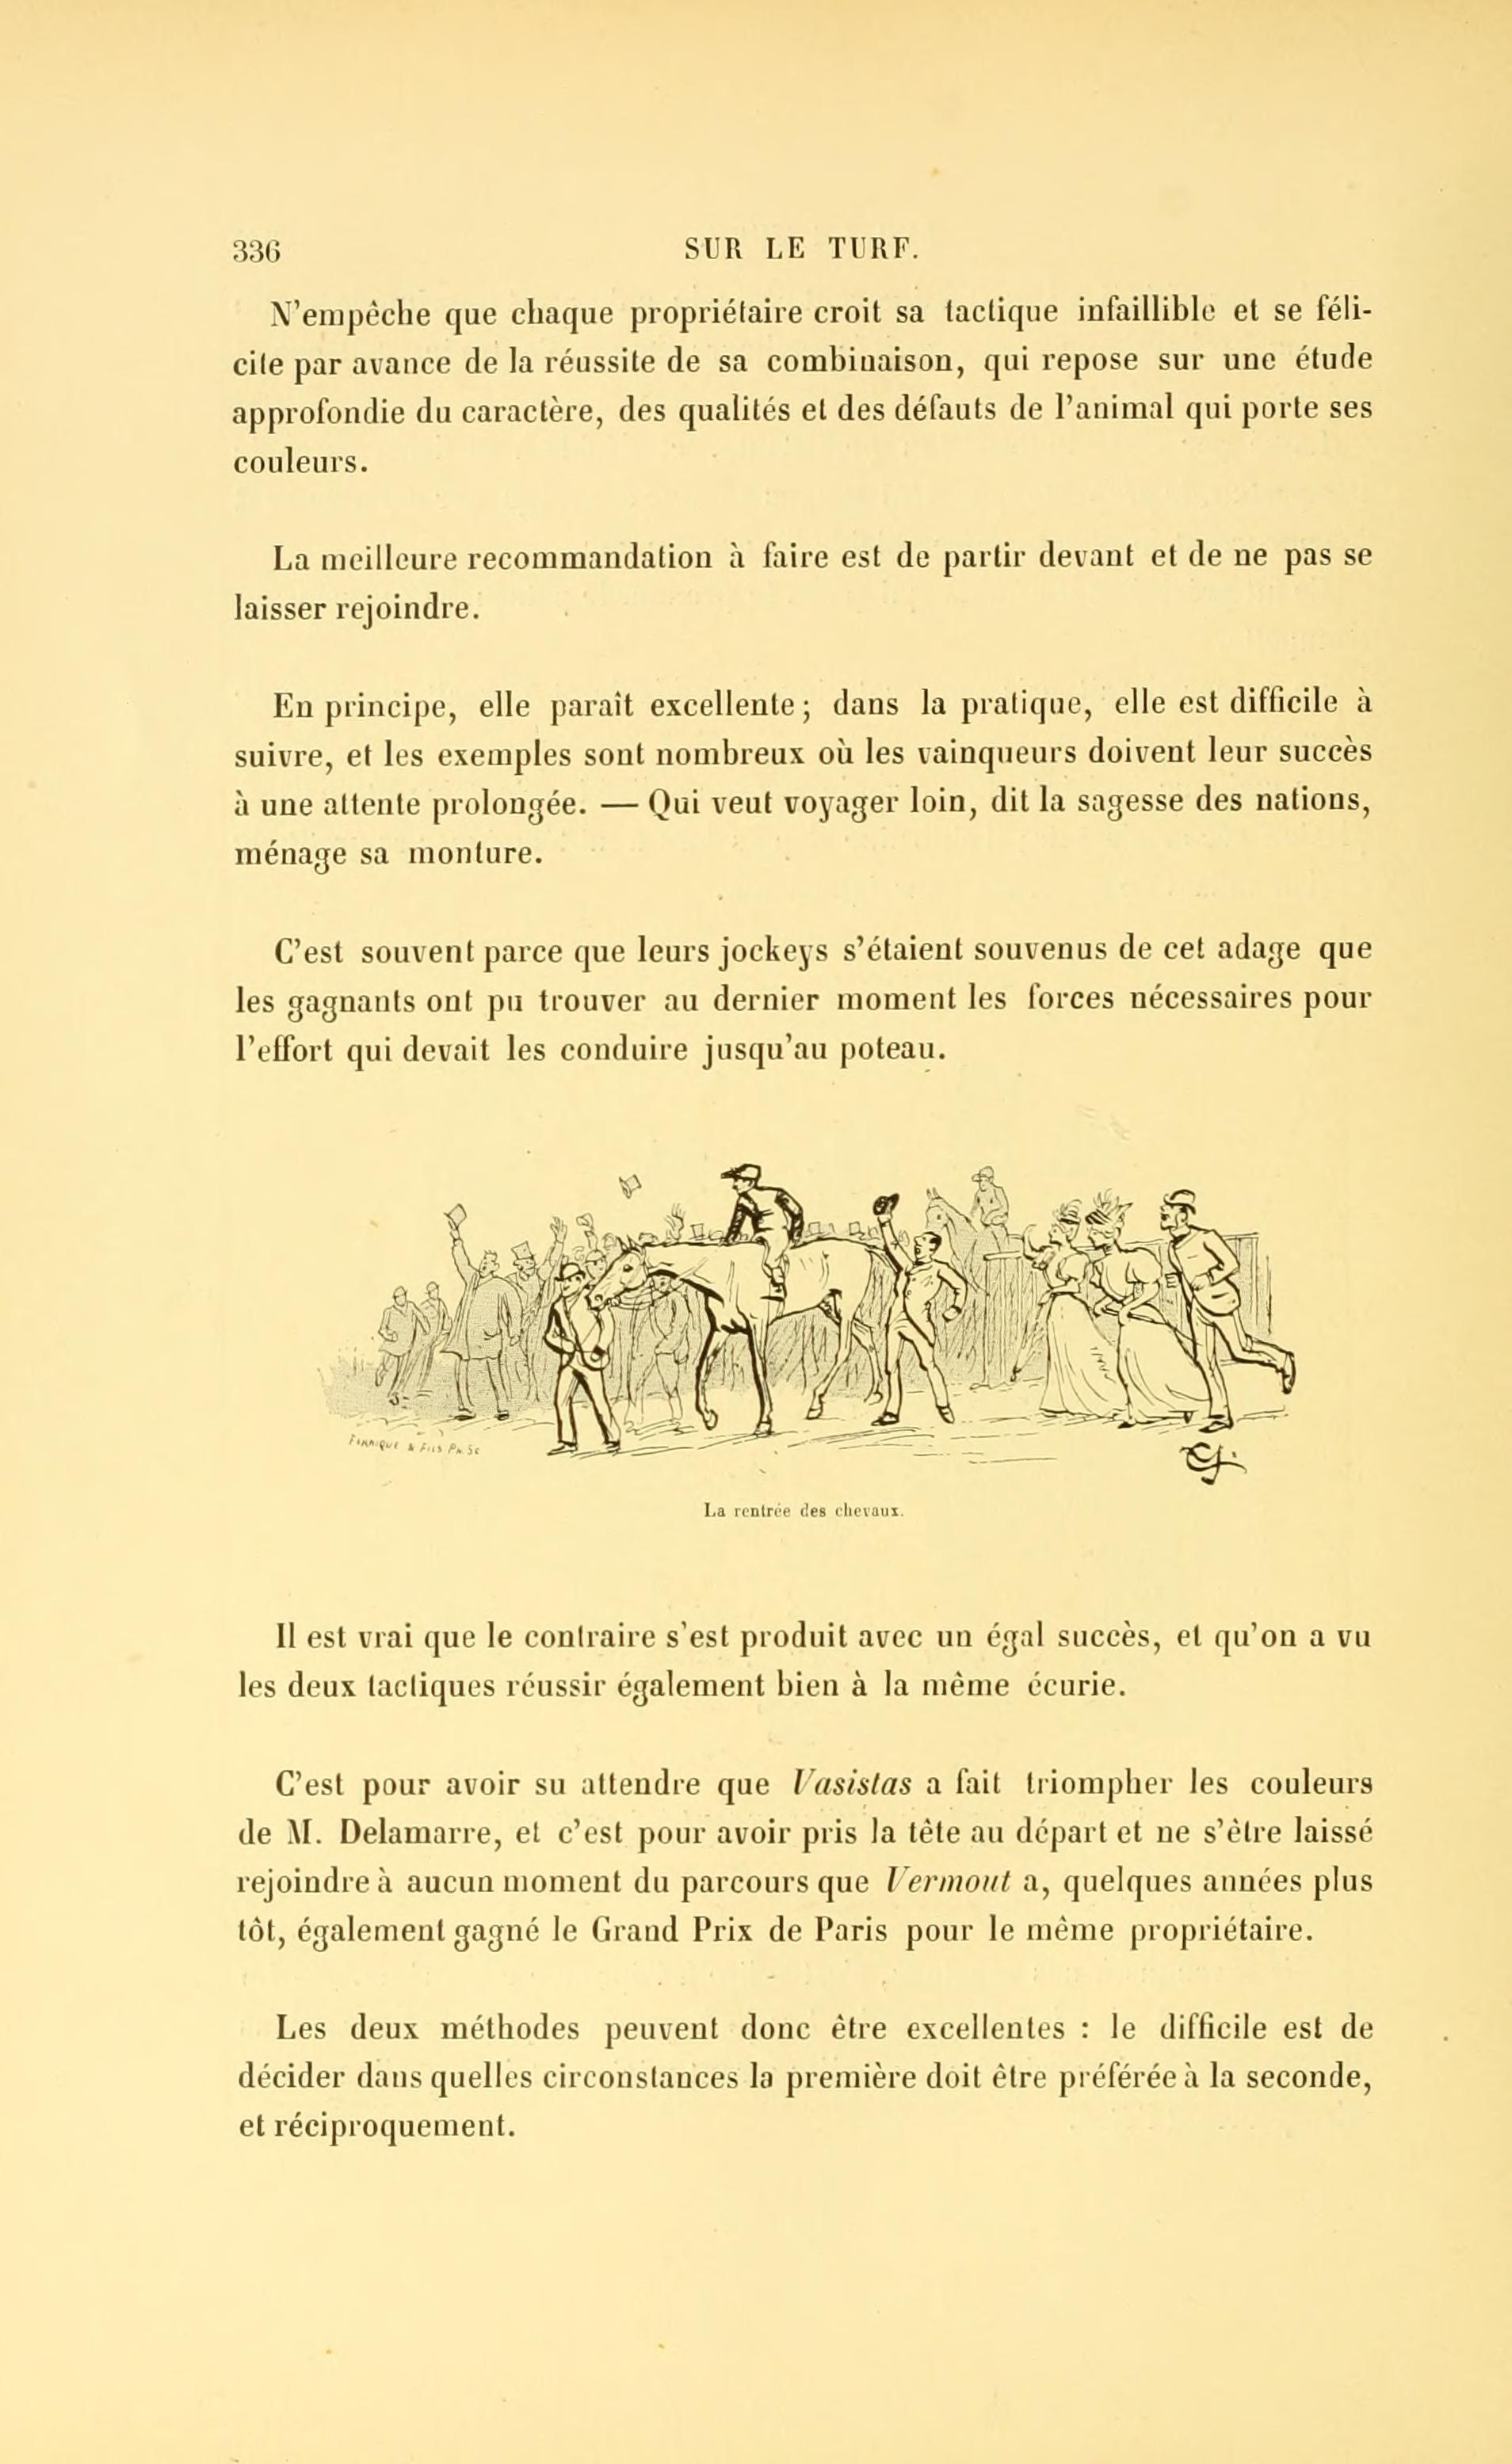 File:Sur le turf (Page 336) BHL21546229 jpg - Wikimedia Commons